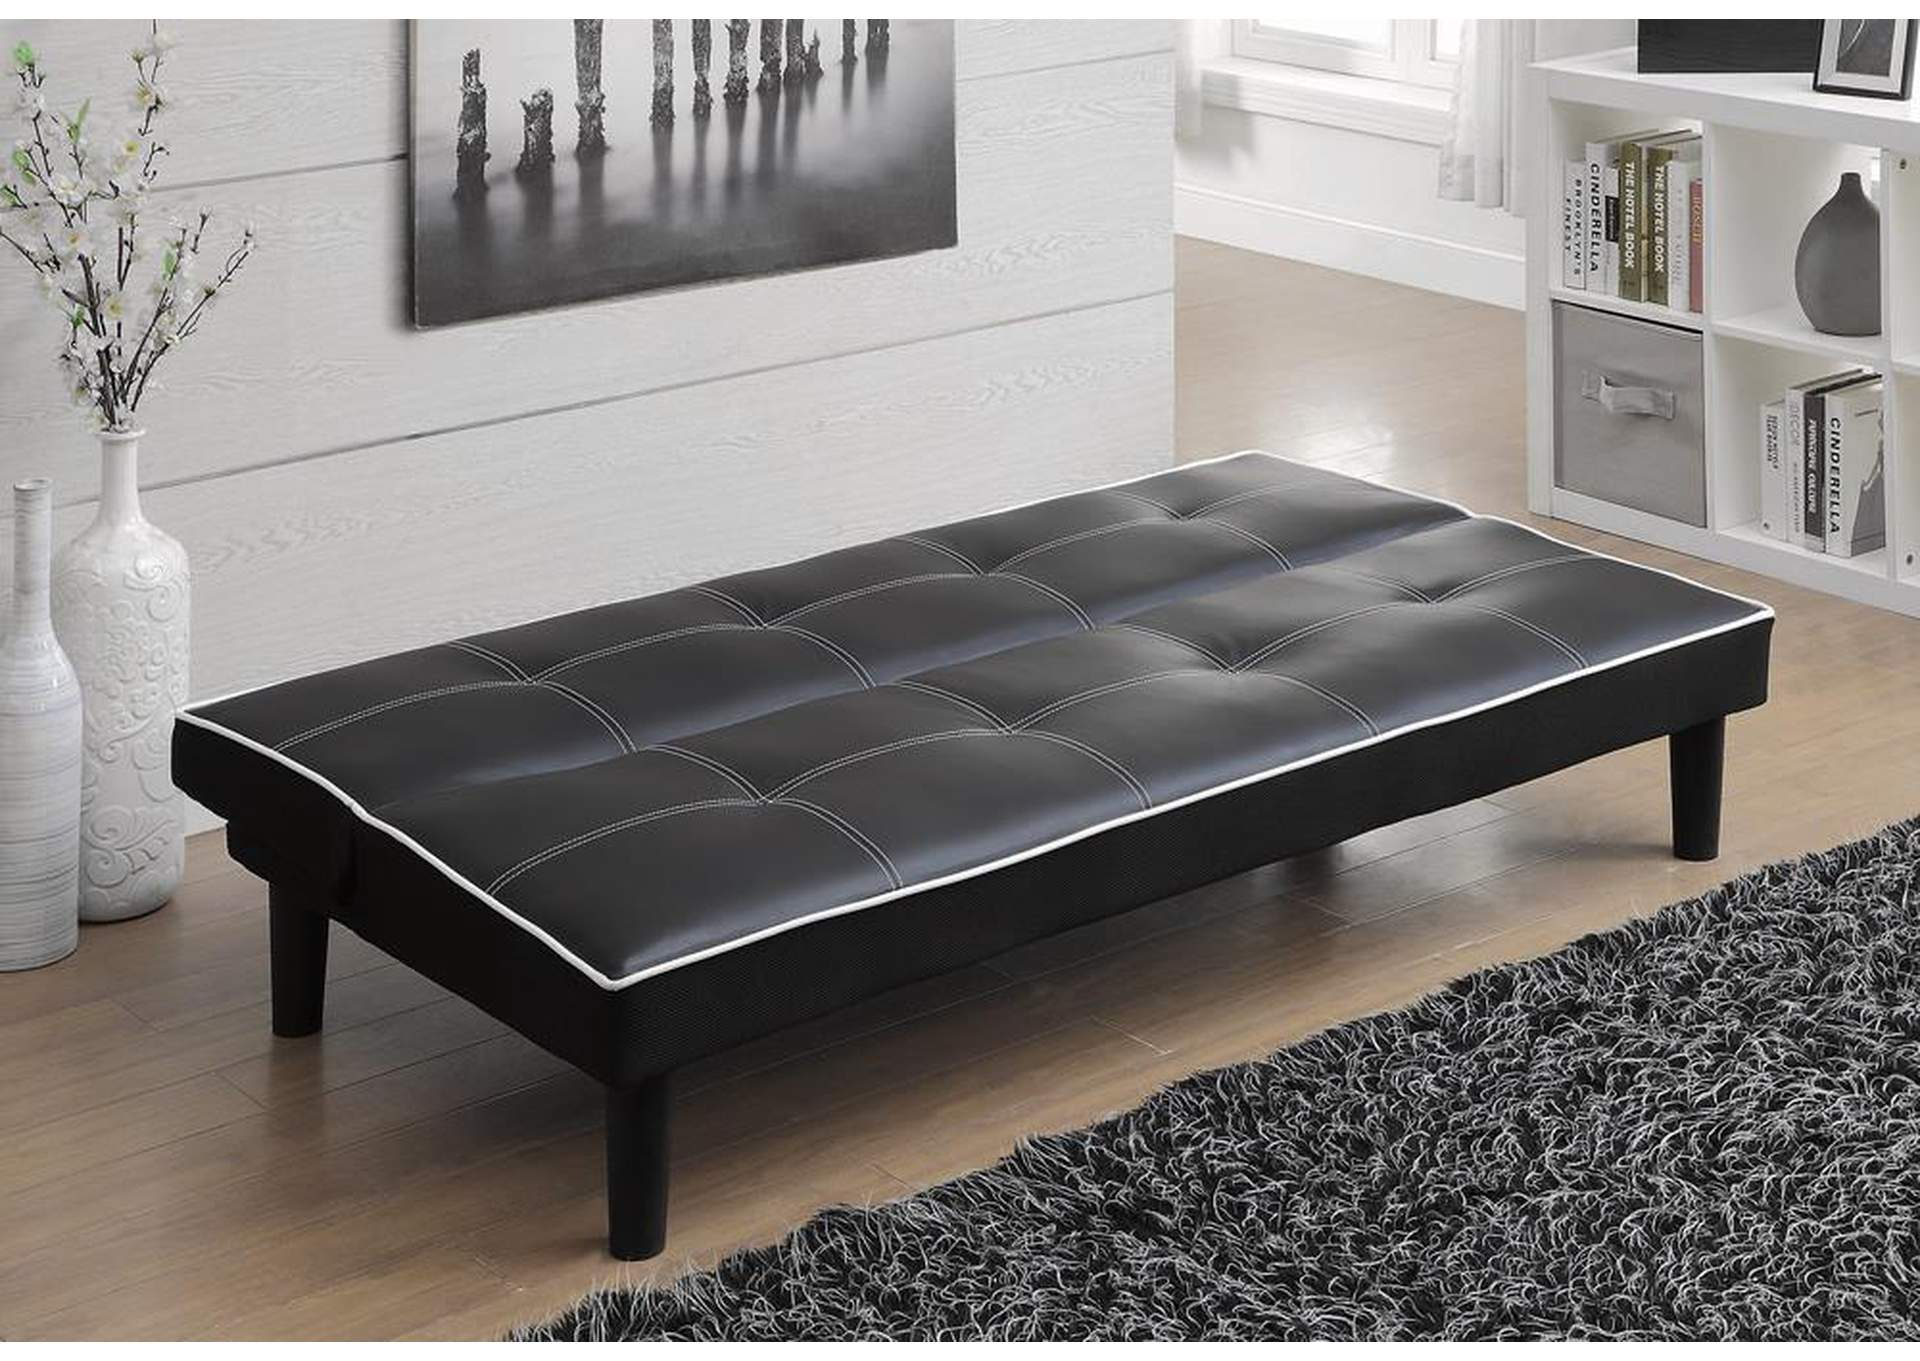 Black Contemporary Black Faux Leather Sofa Bed,Coaster Furniture